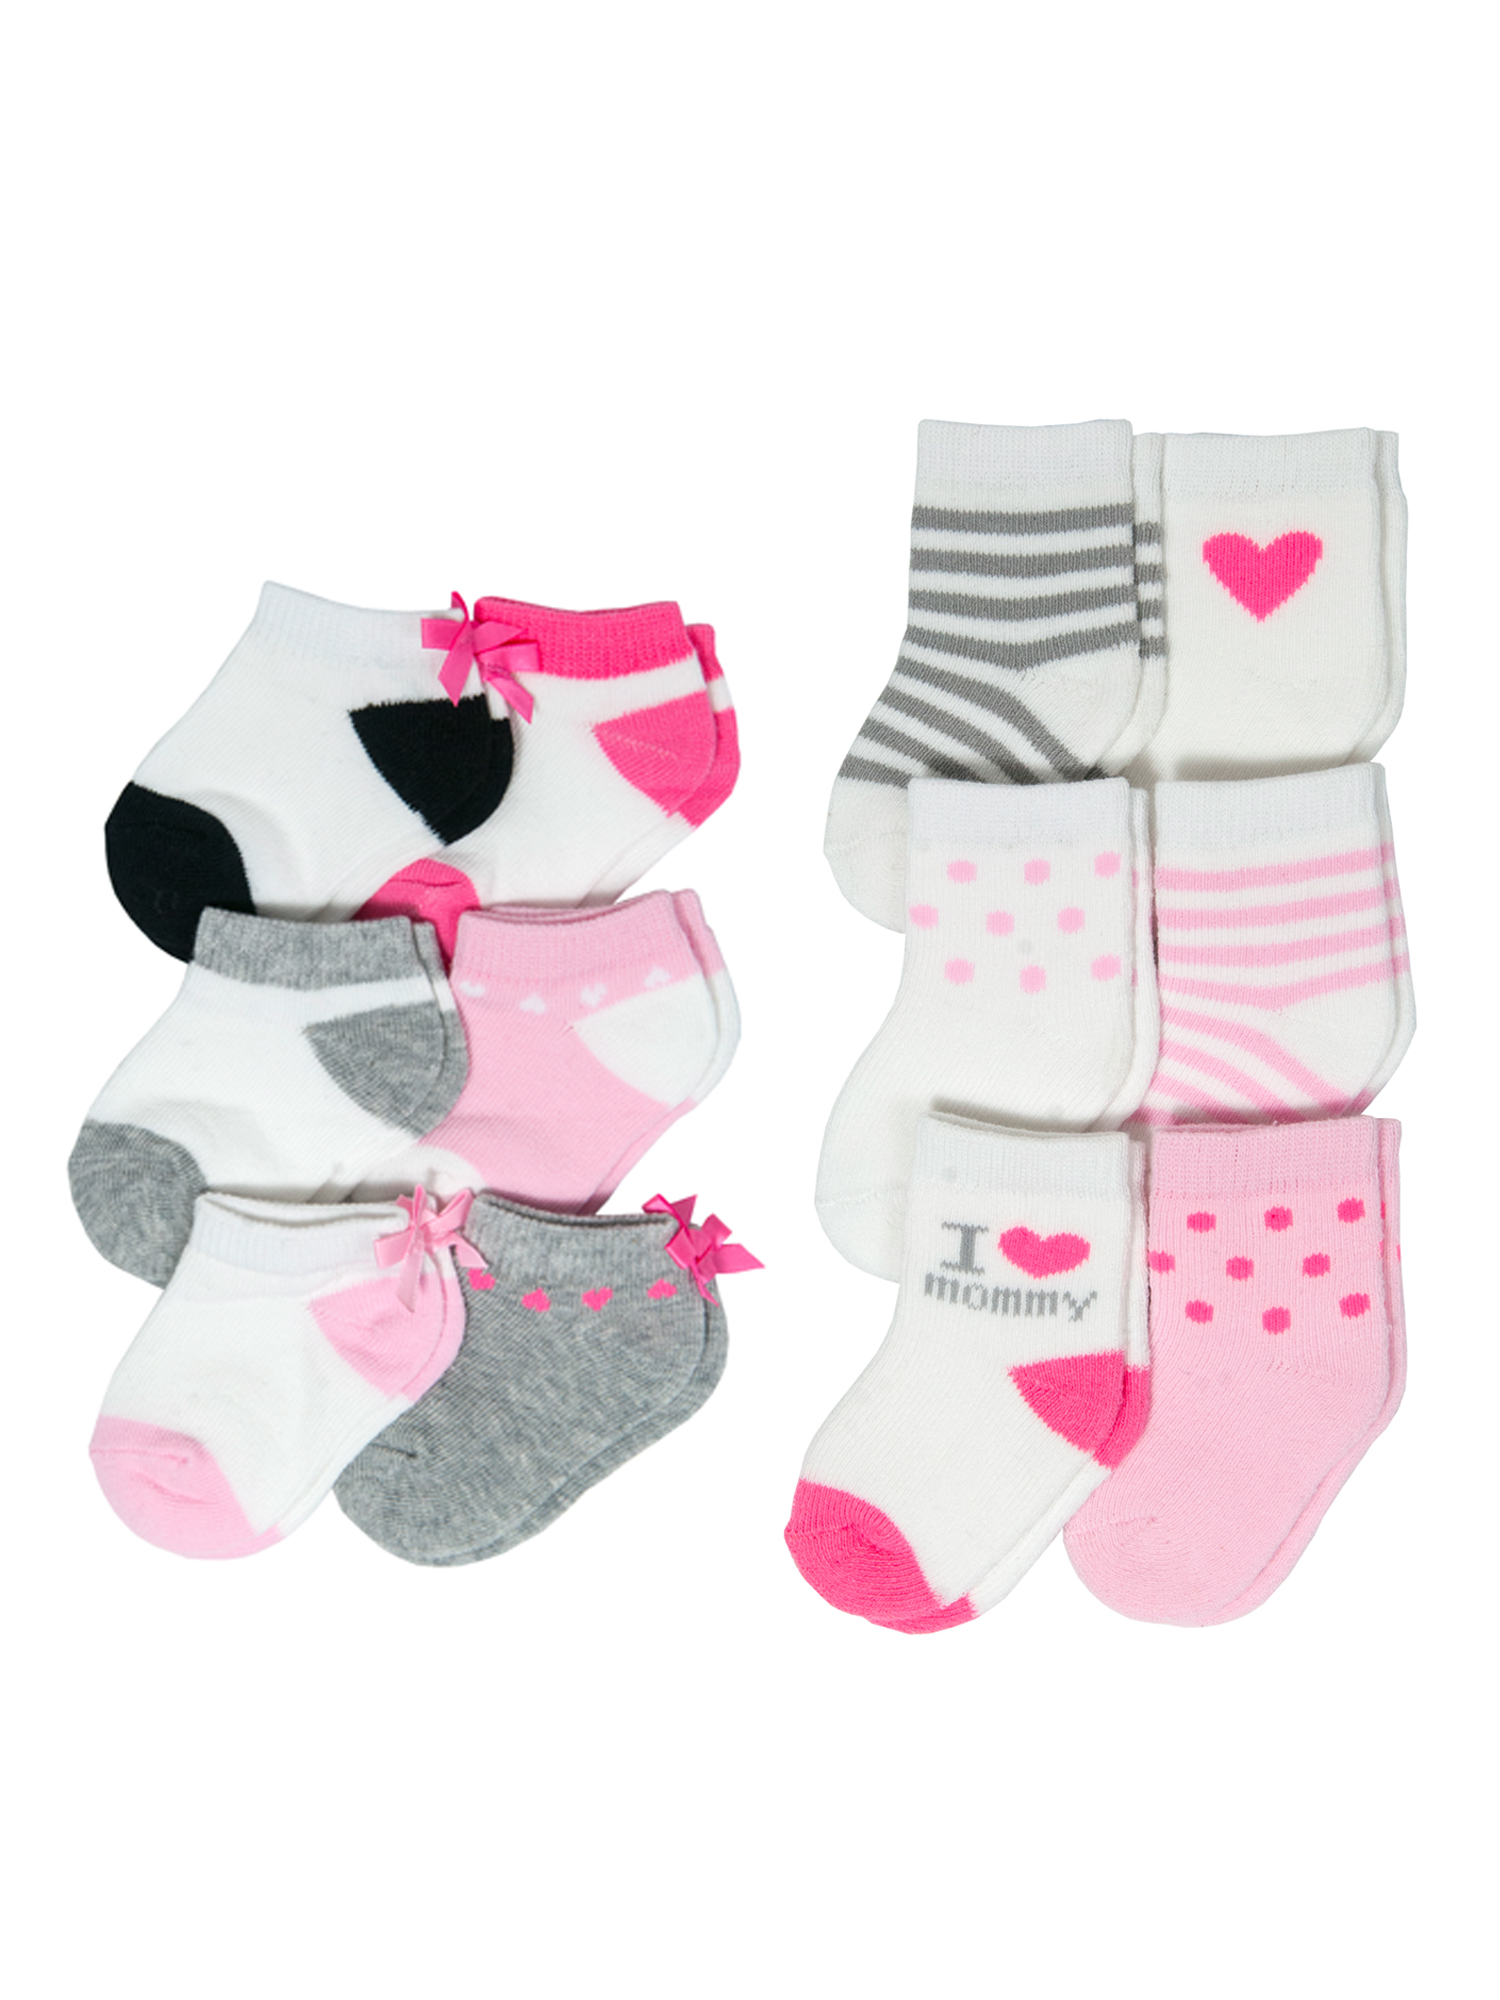 Fashion Sock Set, I Love Mommy and Low Cut Bows, 12 Pack (Baby Girls)